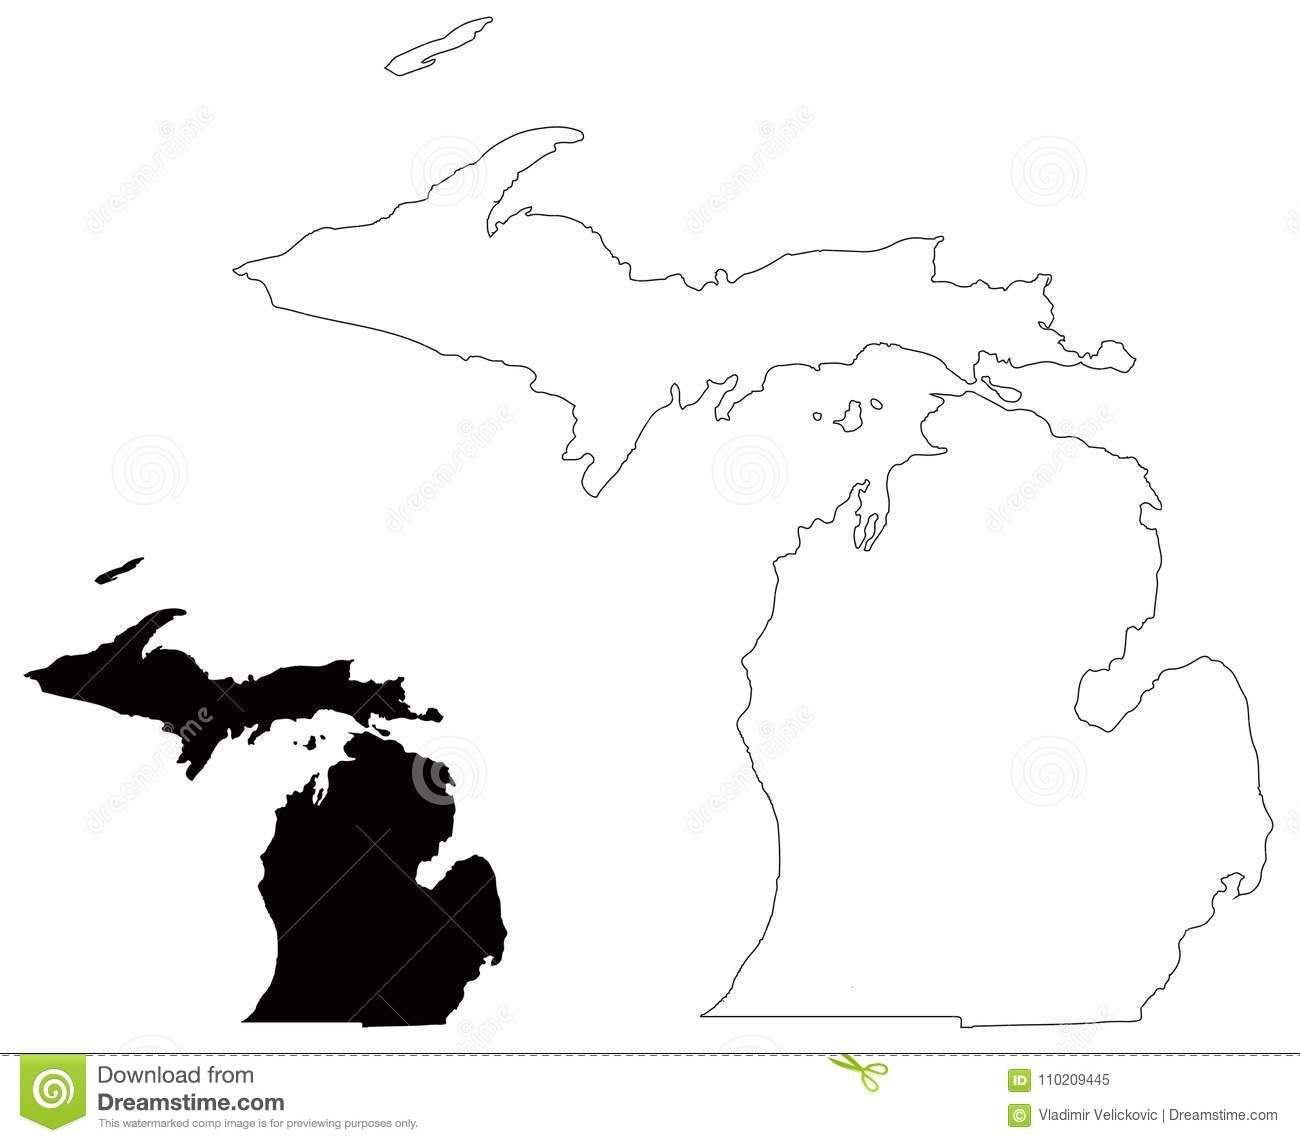 michigan map state in the great lakes and midwestern regions of